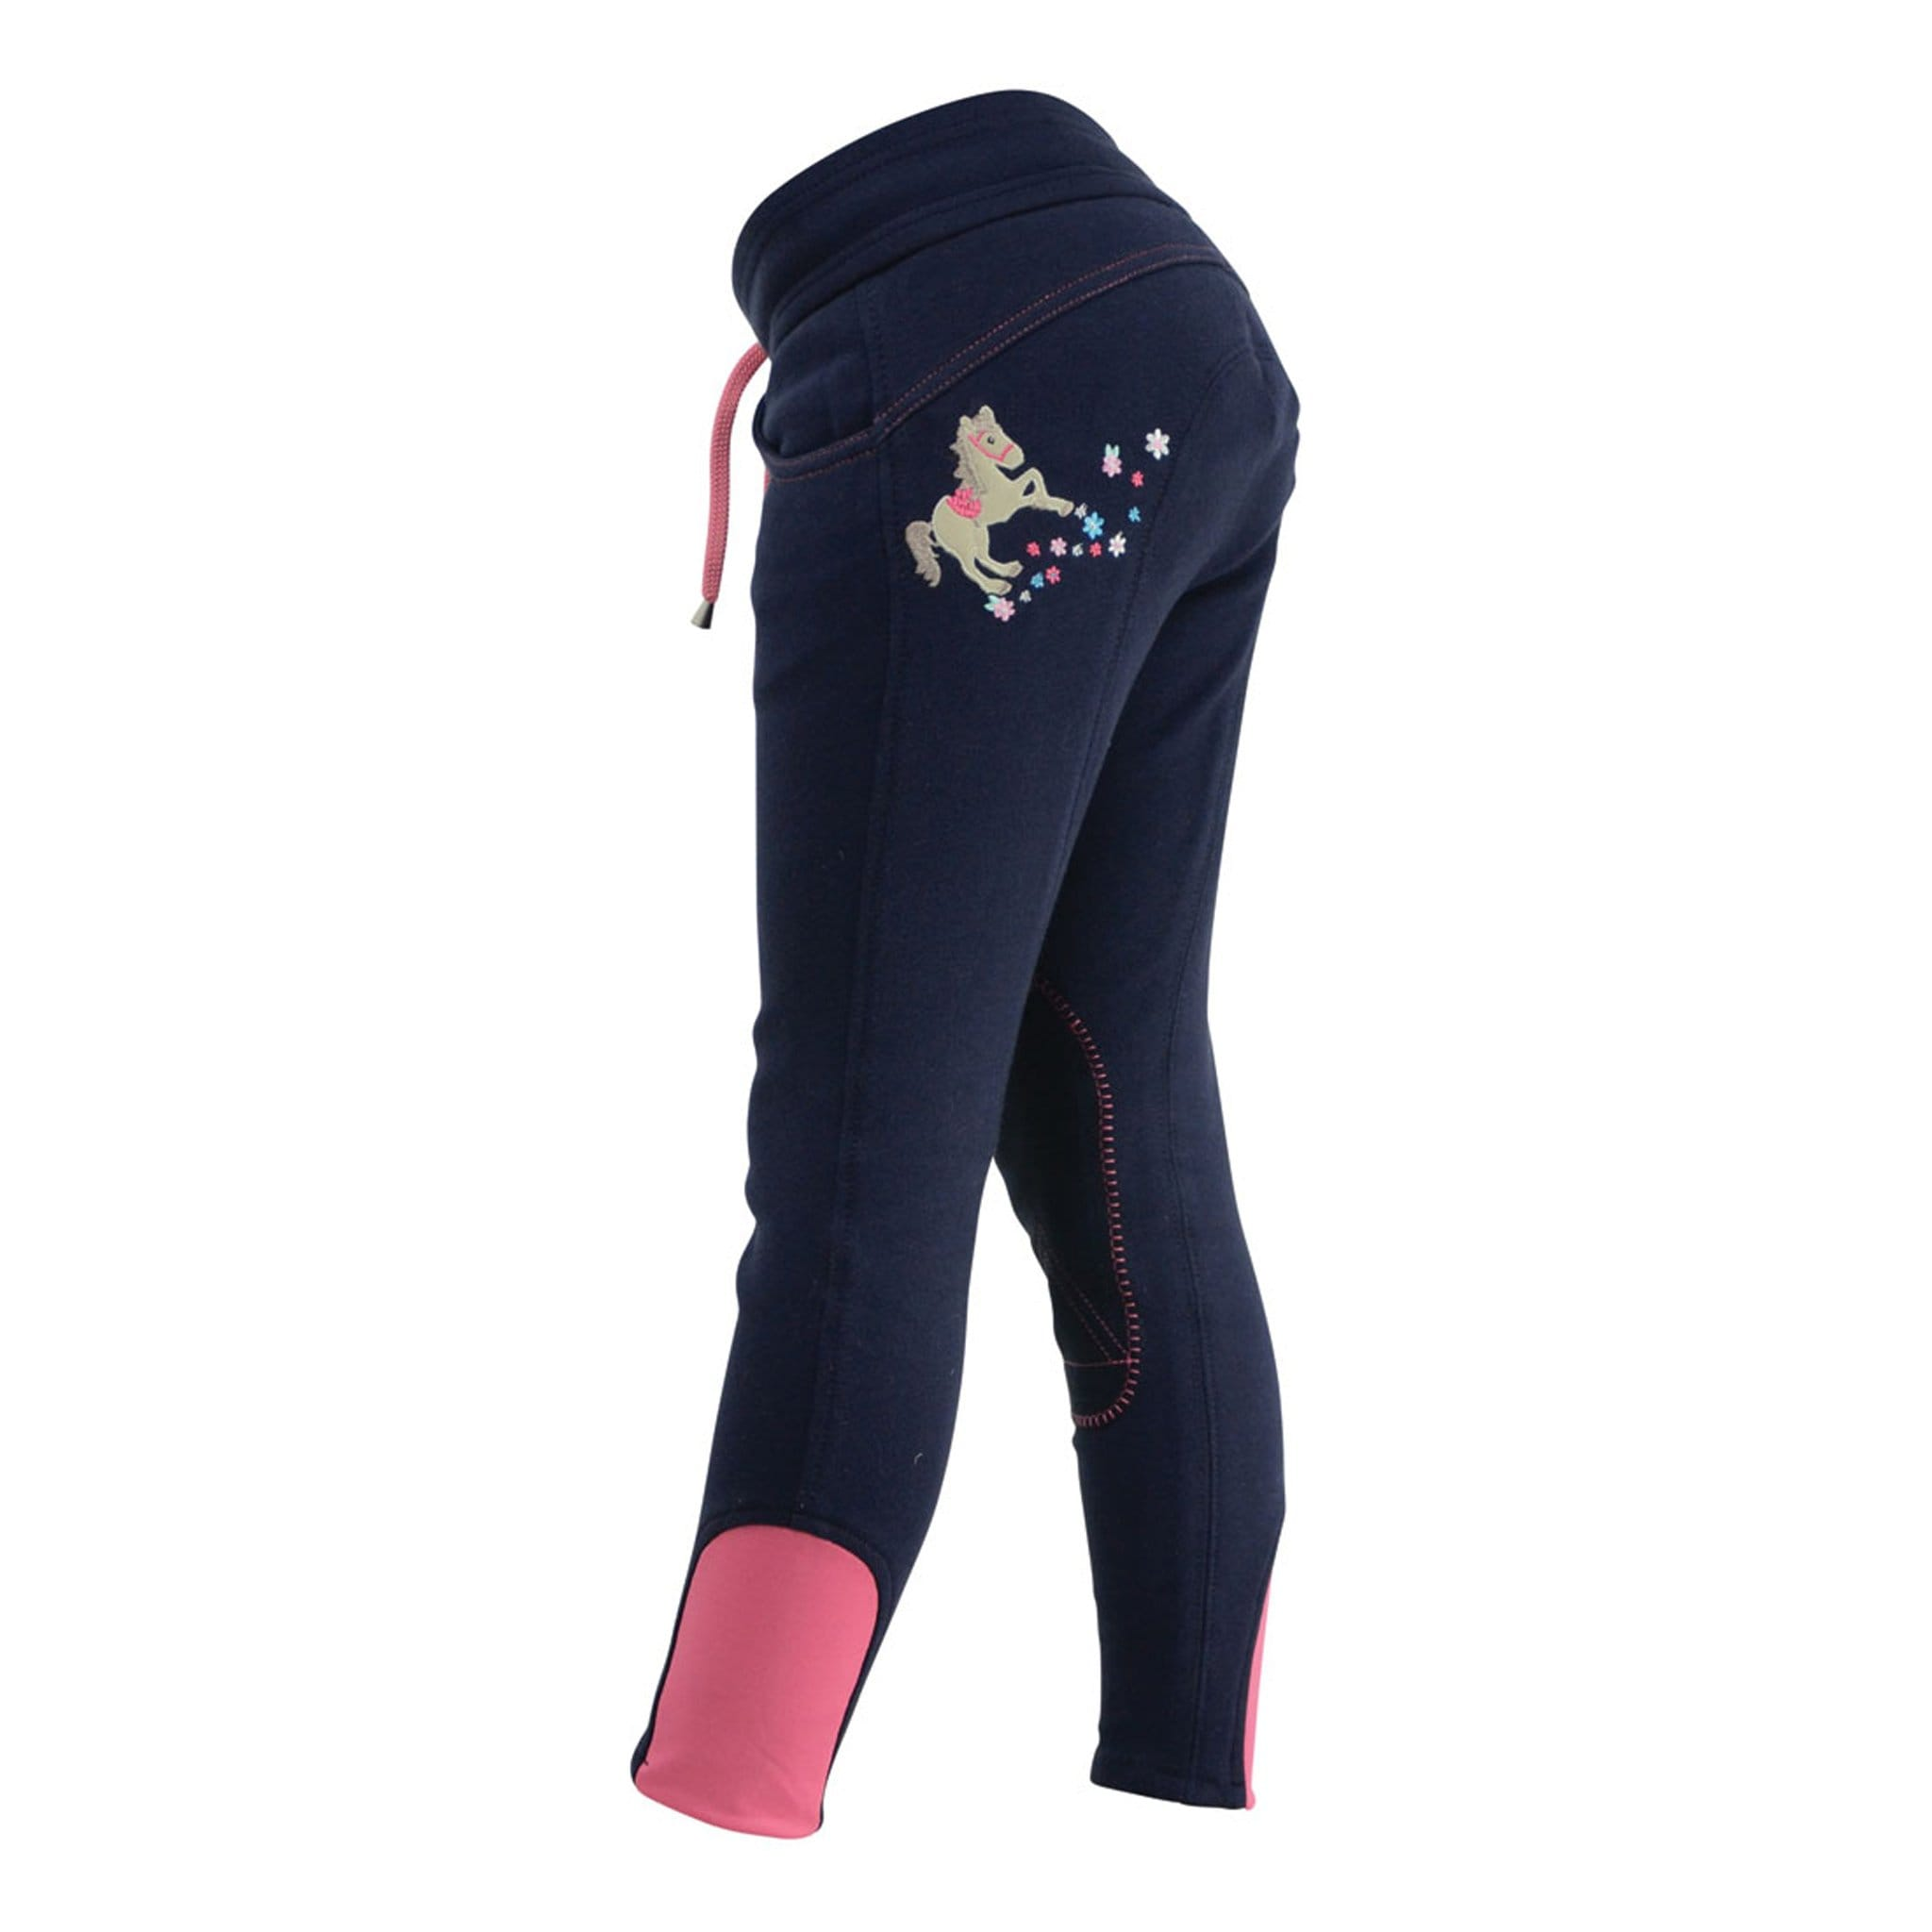 Hy Children's Little Rider Felicity Flower Pull On Self Knee Patch Jodhpurs Side View 17408.